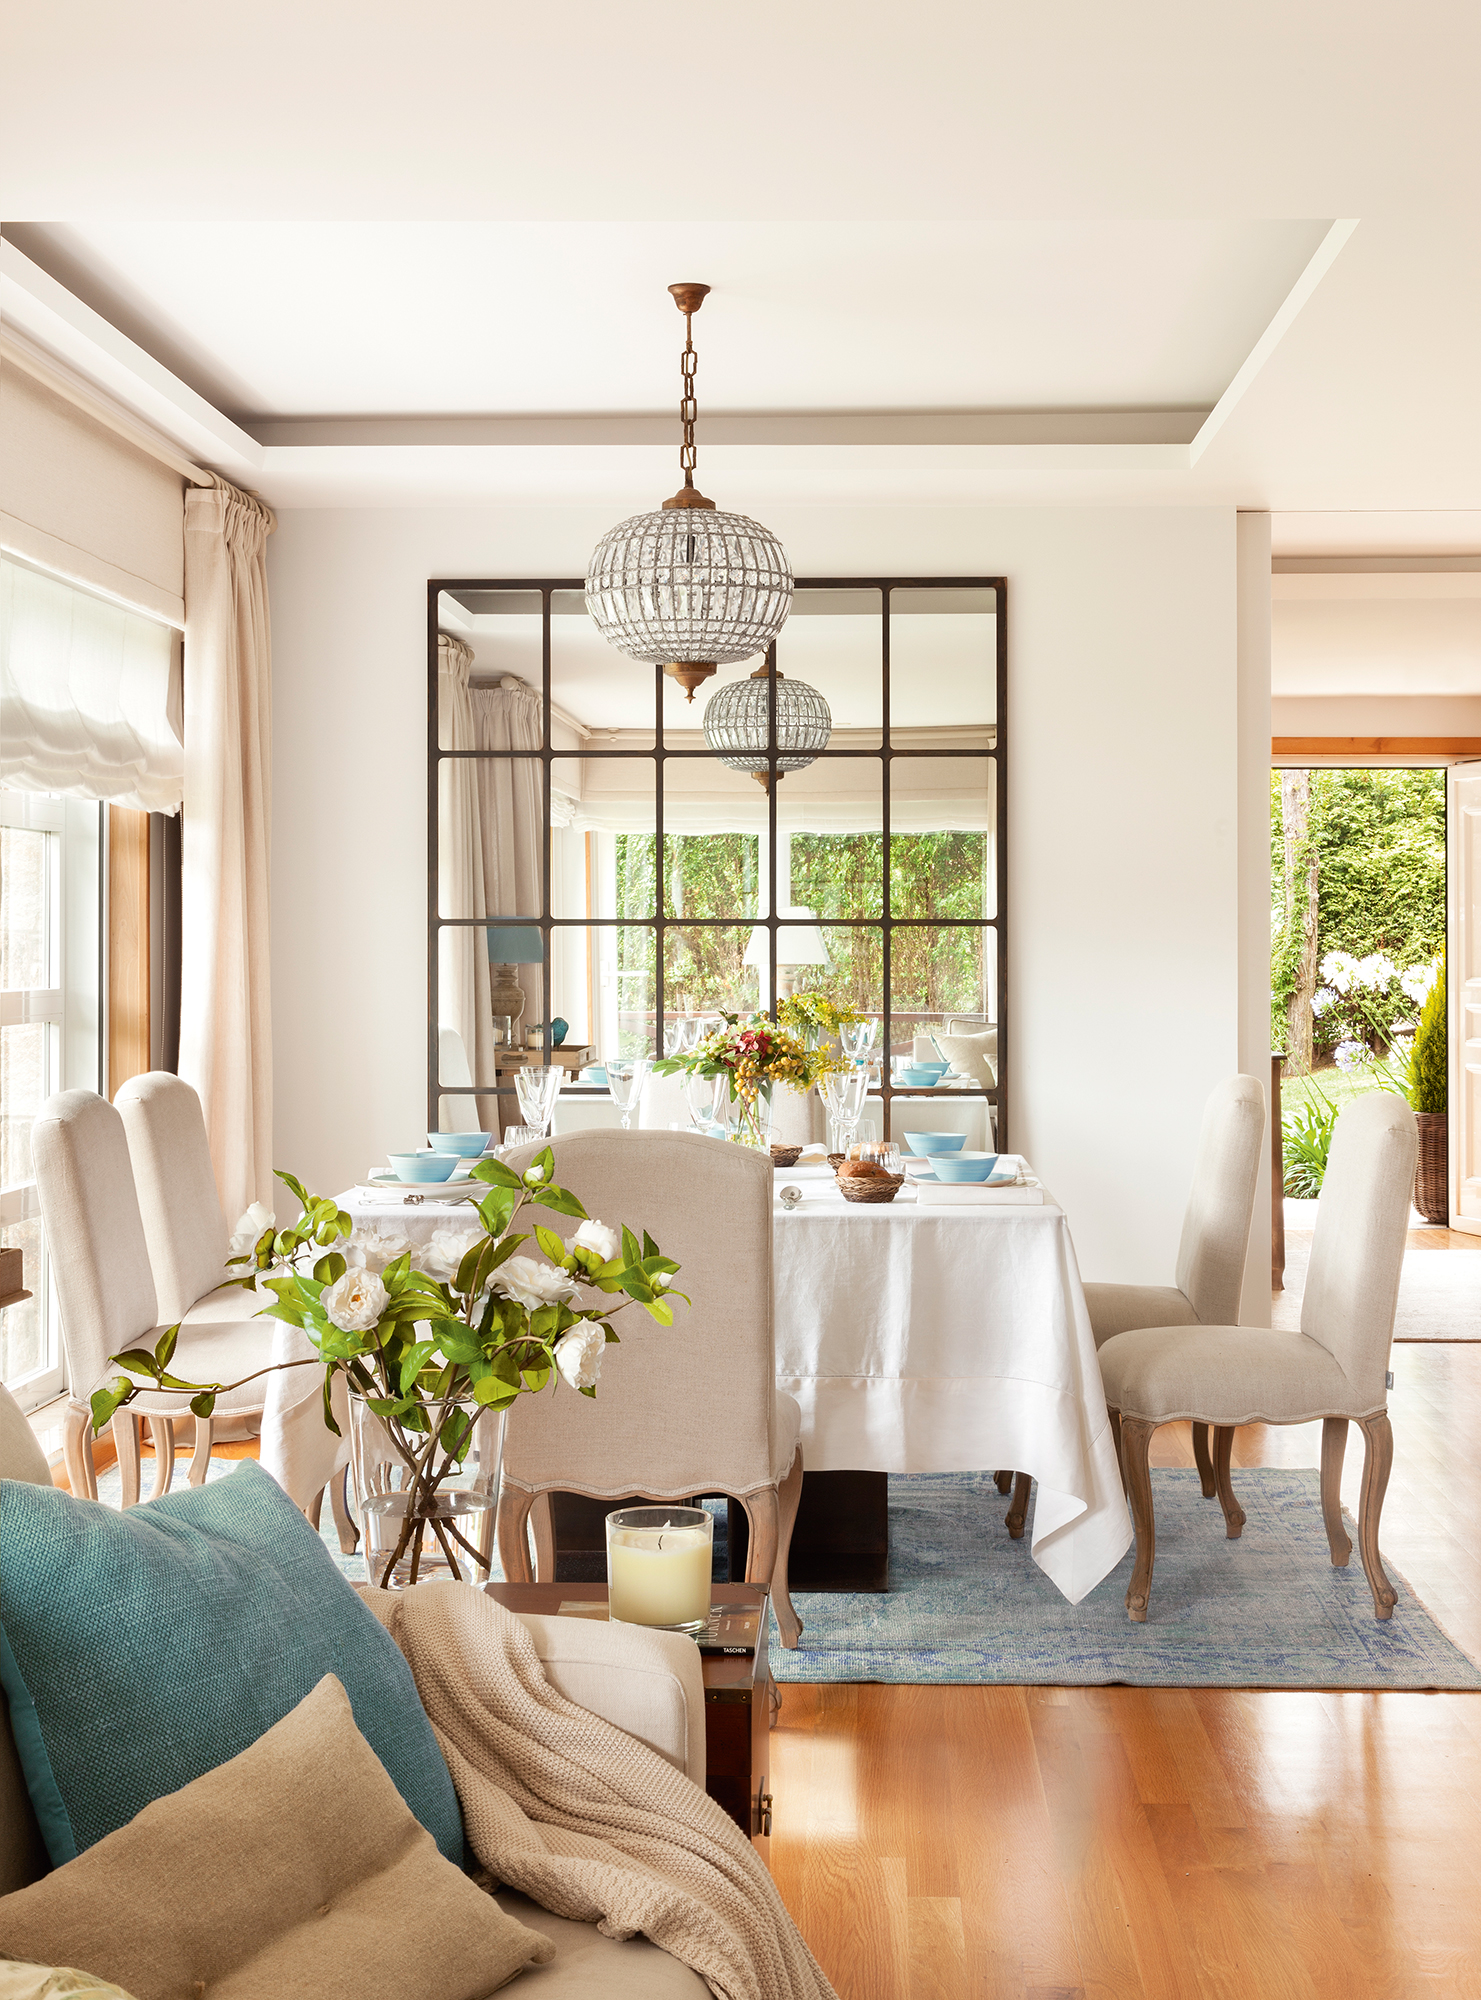 Comedor 15 ideas para decorar sus paredes Como decorar un living comedor de un departamento